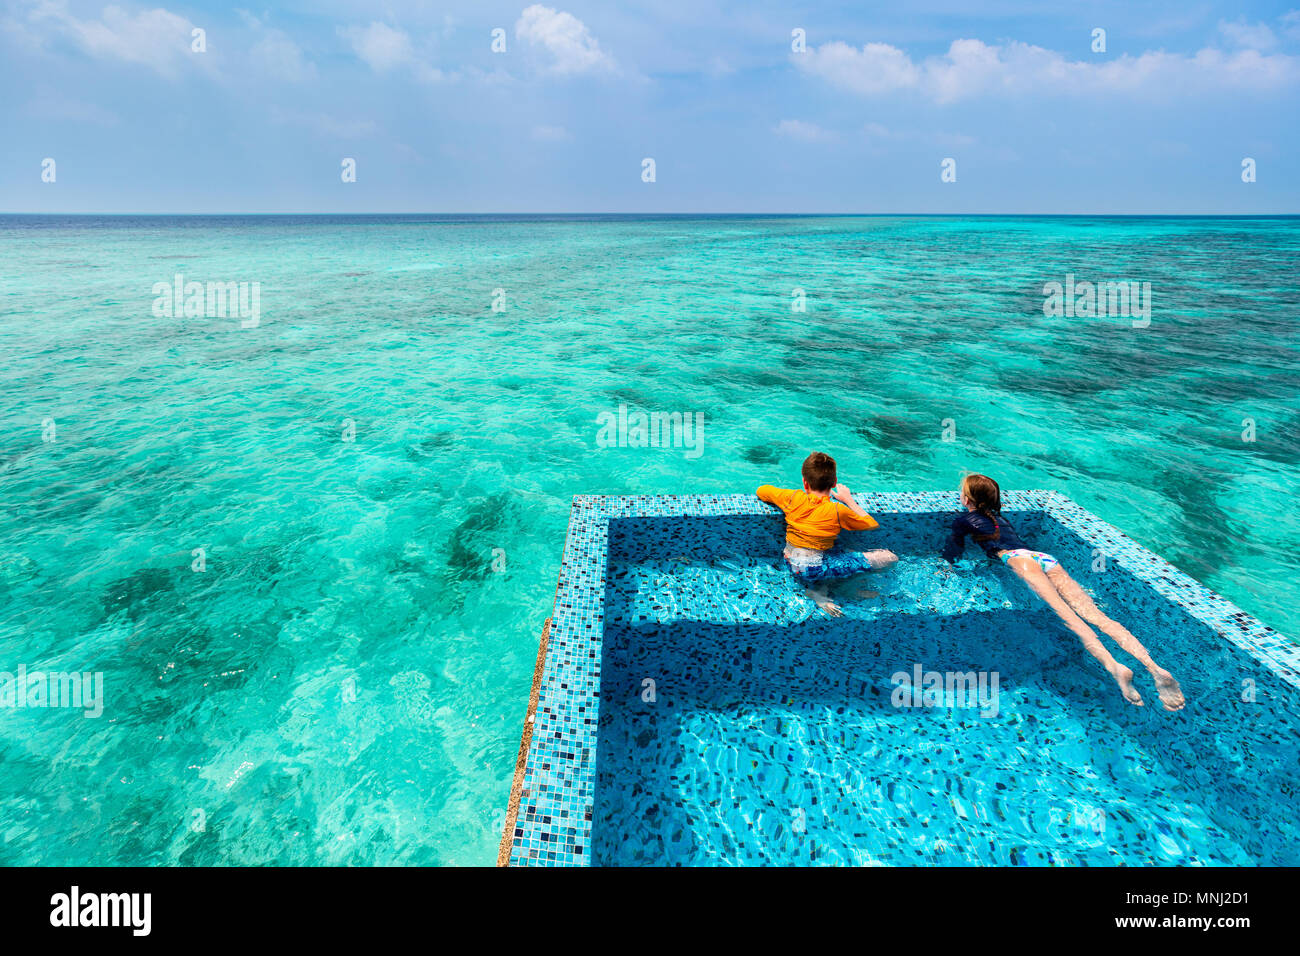 Kids Brother And Sister At Infinity Swimming Pool Having Fun During Summer Vacation Stock Photo Alamy